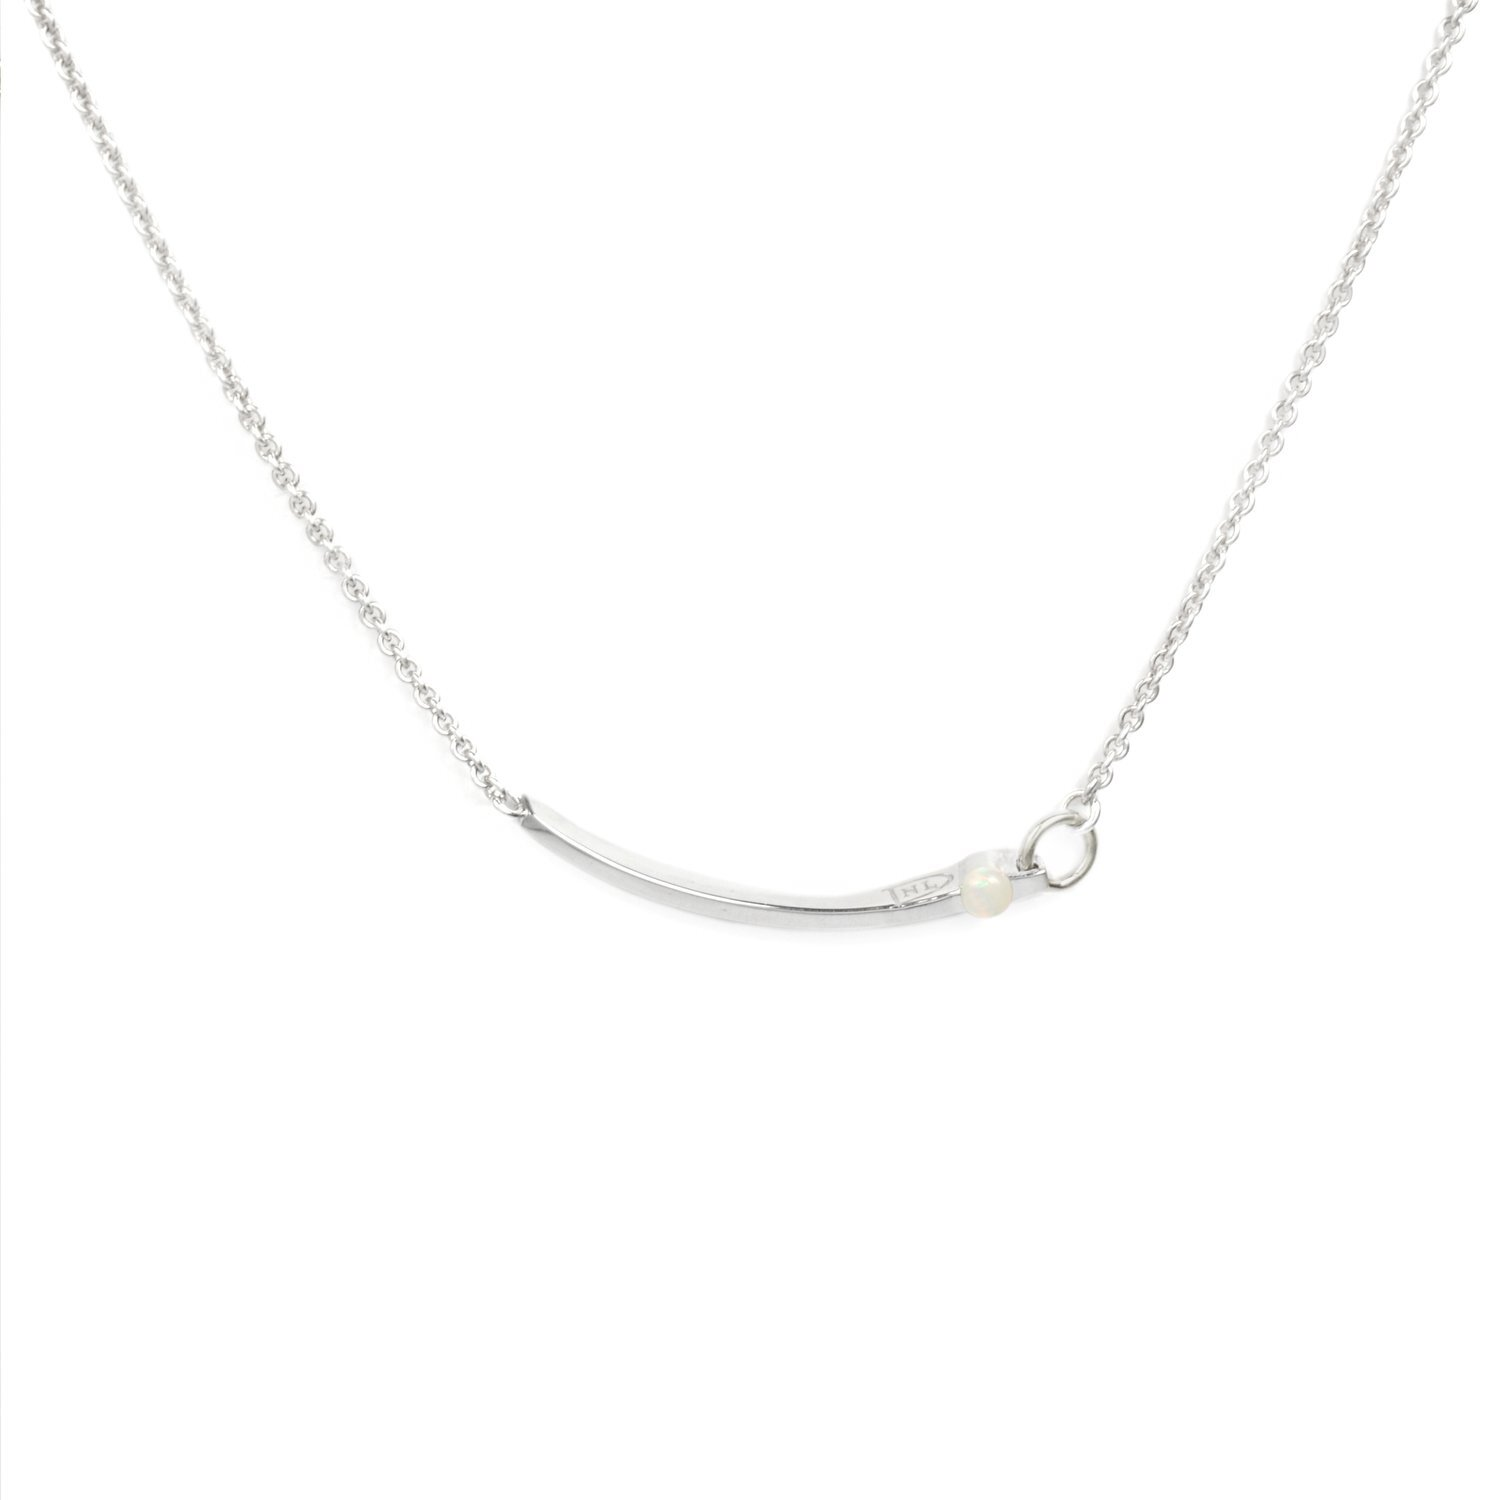 NL-N28 Silver Staight Line Opal Necklace.jpg